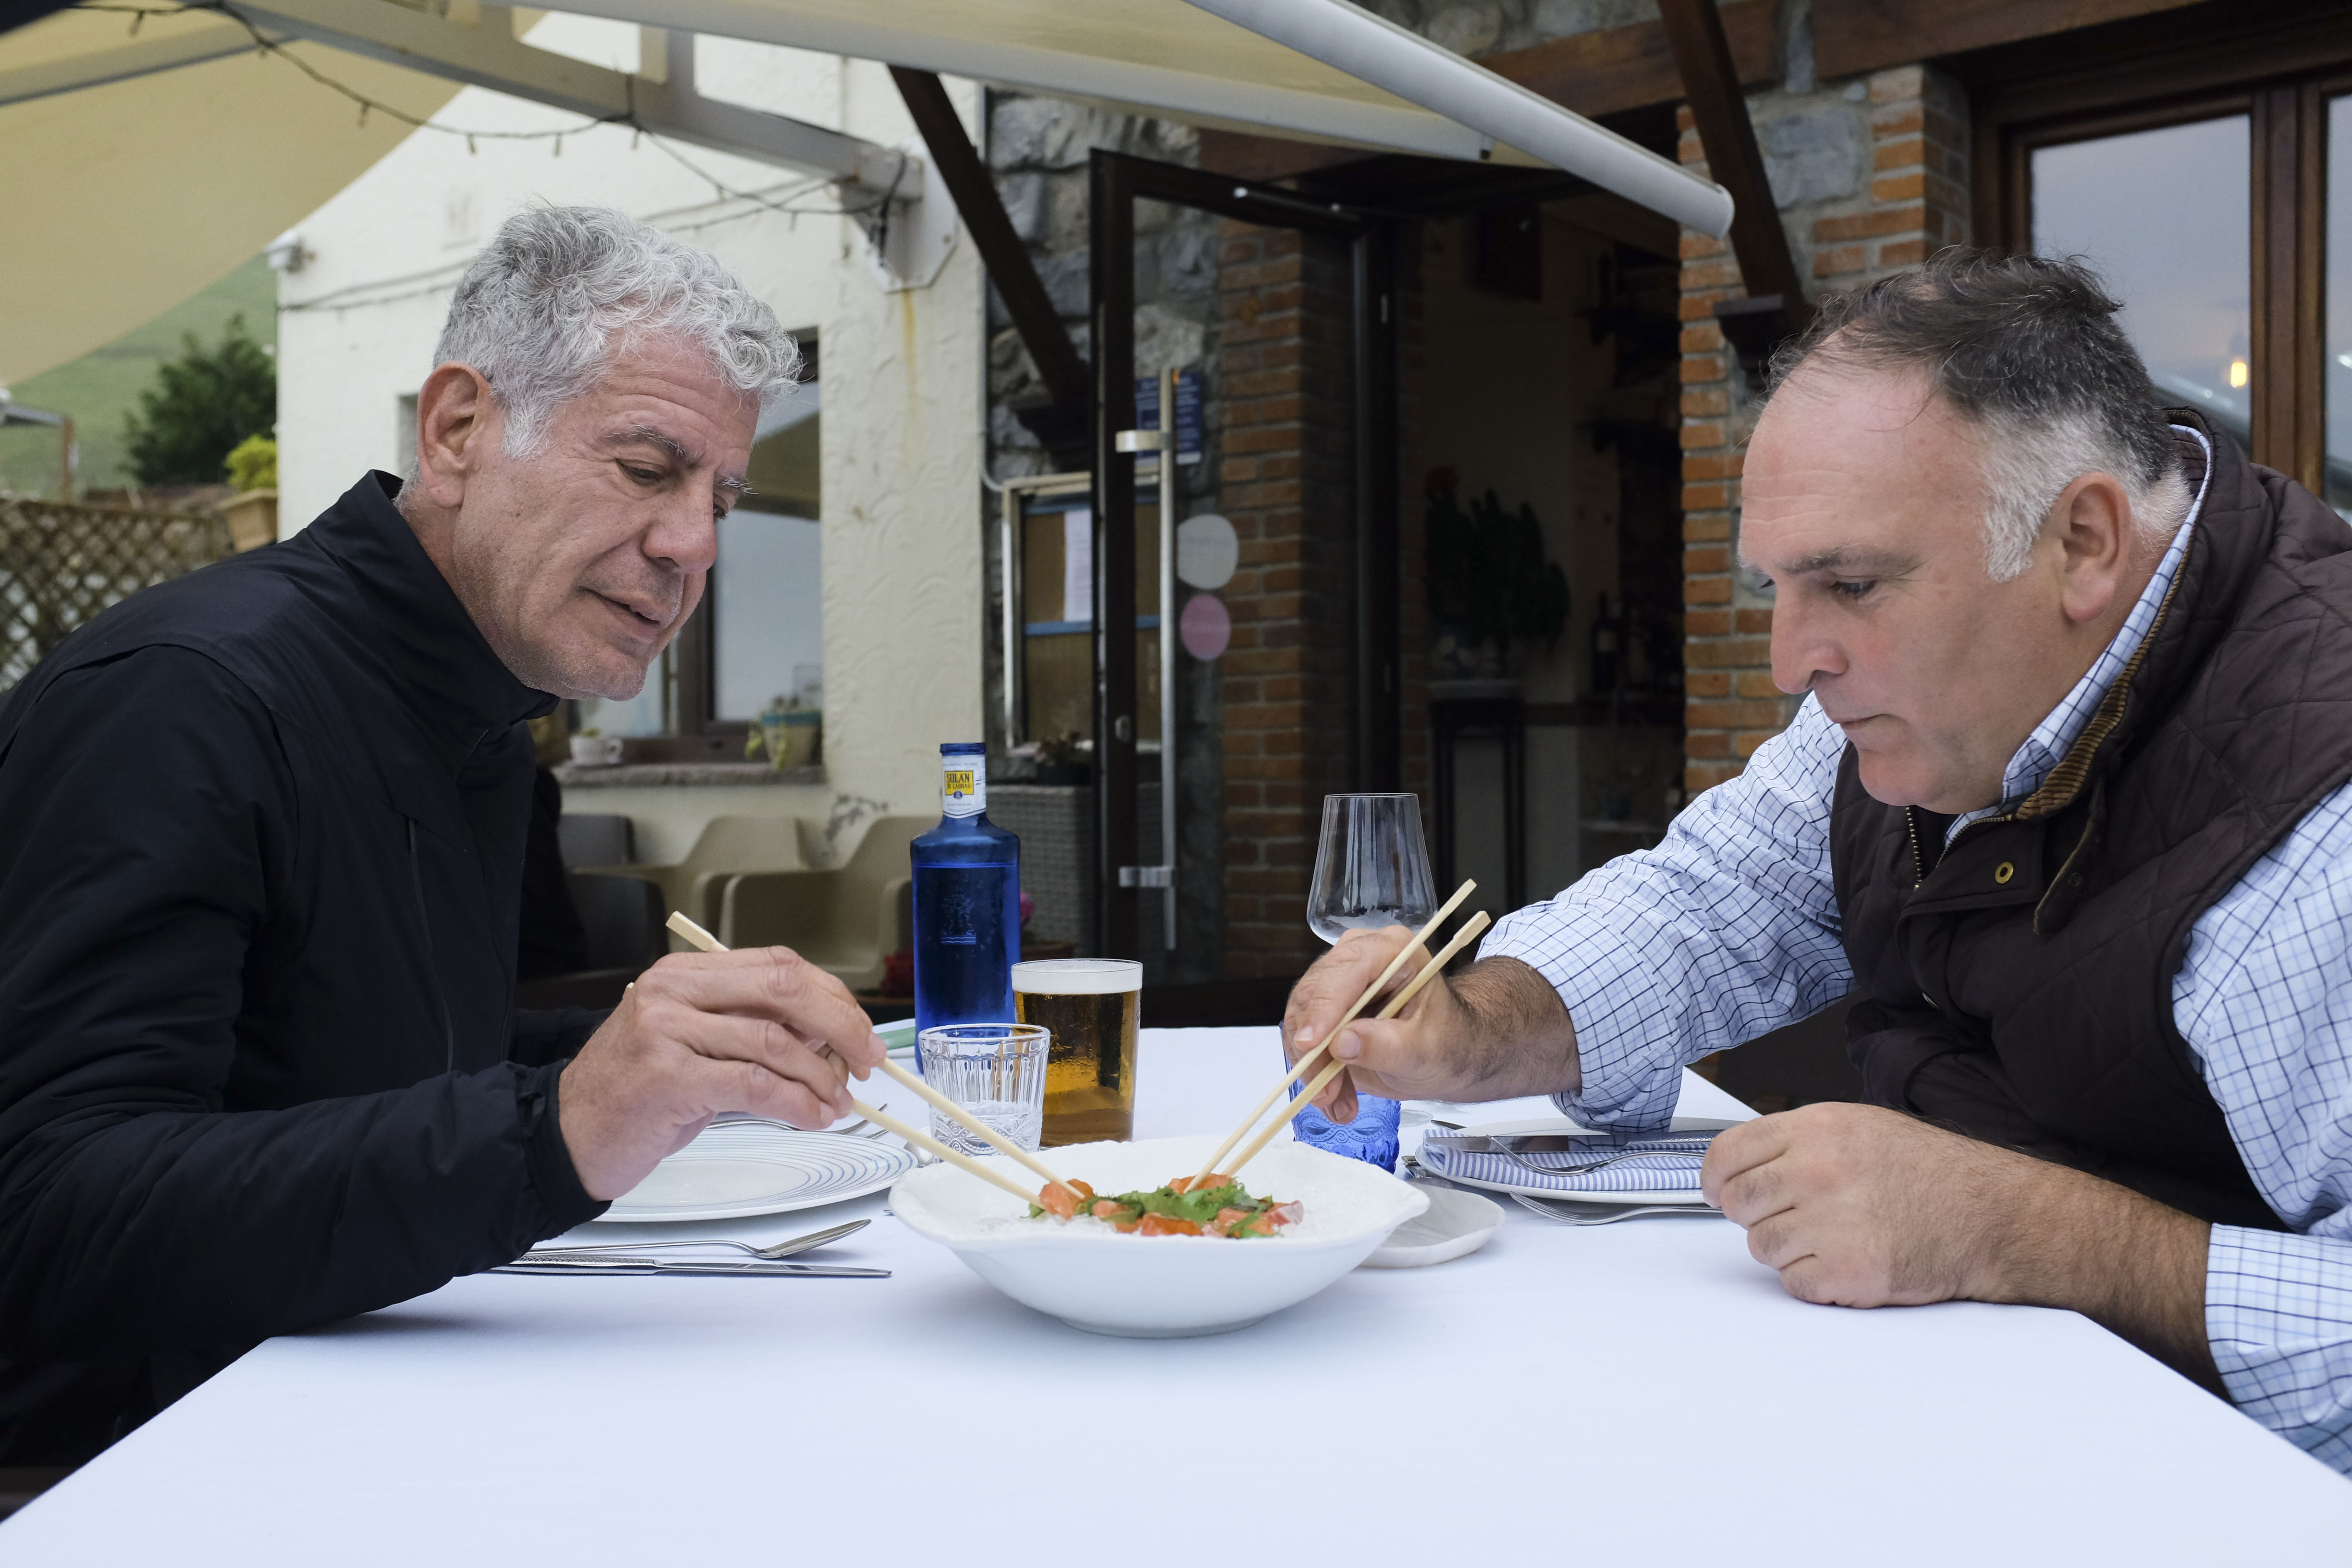 Anthony Bourdain and Jose Andres dining in Asturias, Spain.